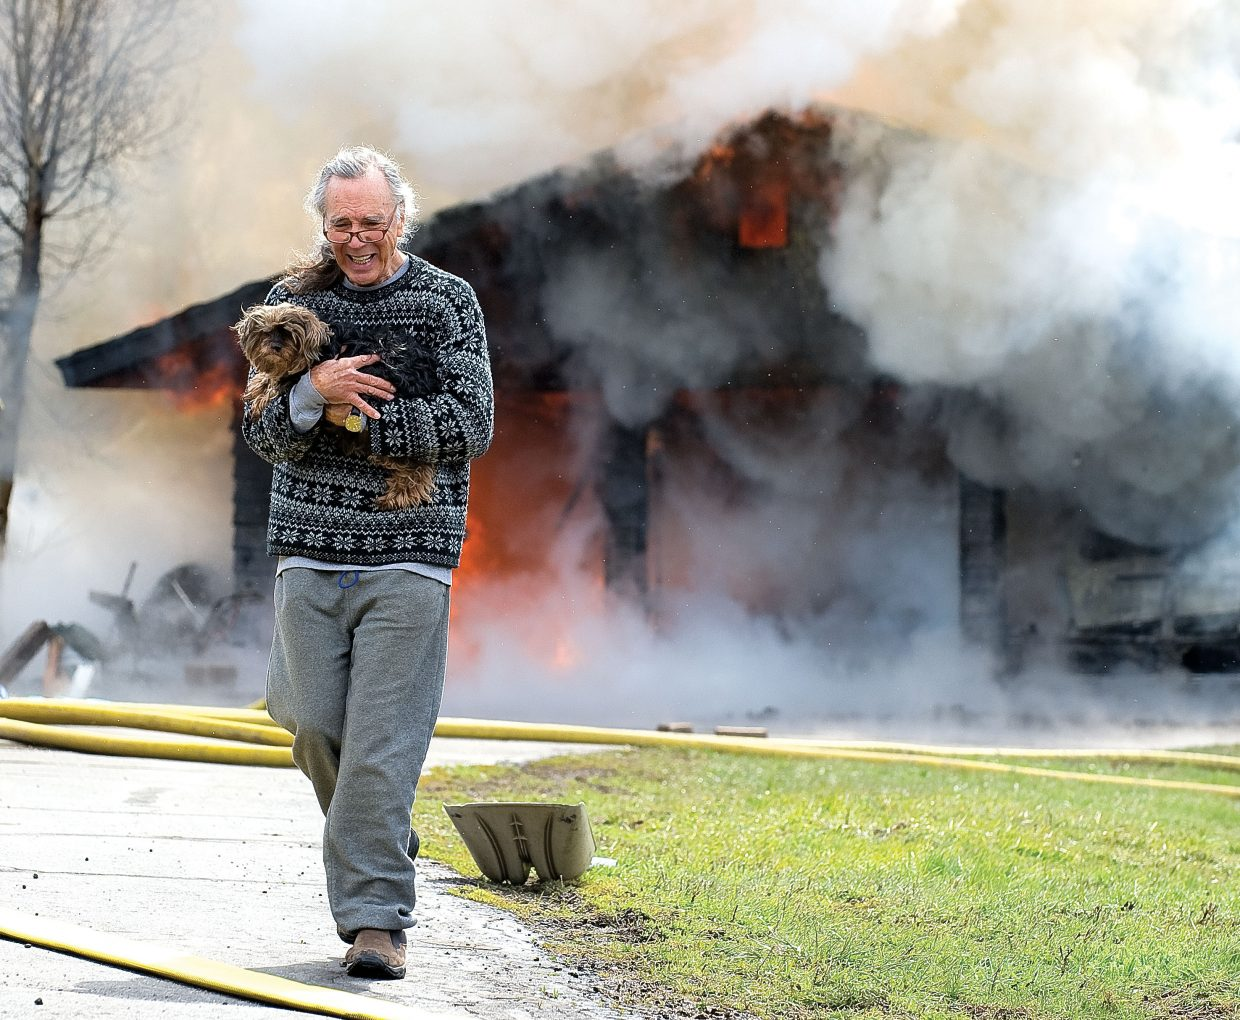 Chris Kipfer carries a dog away from his home on Deerfoot Avenue on Wednesday morning. Steamboat Springs Fire Rescue responded to a fire that apparently started in the garage of the home shortly before 11 a.m.